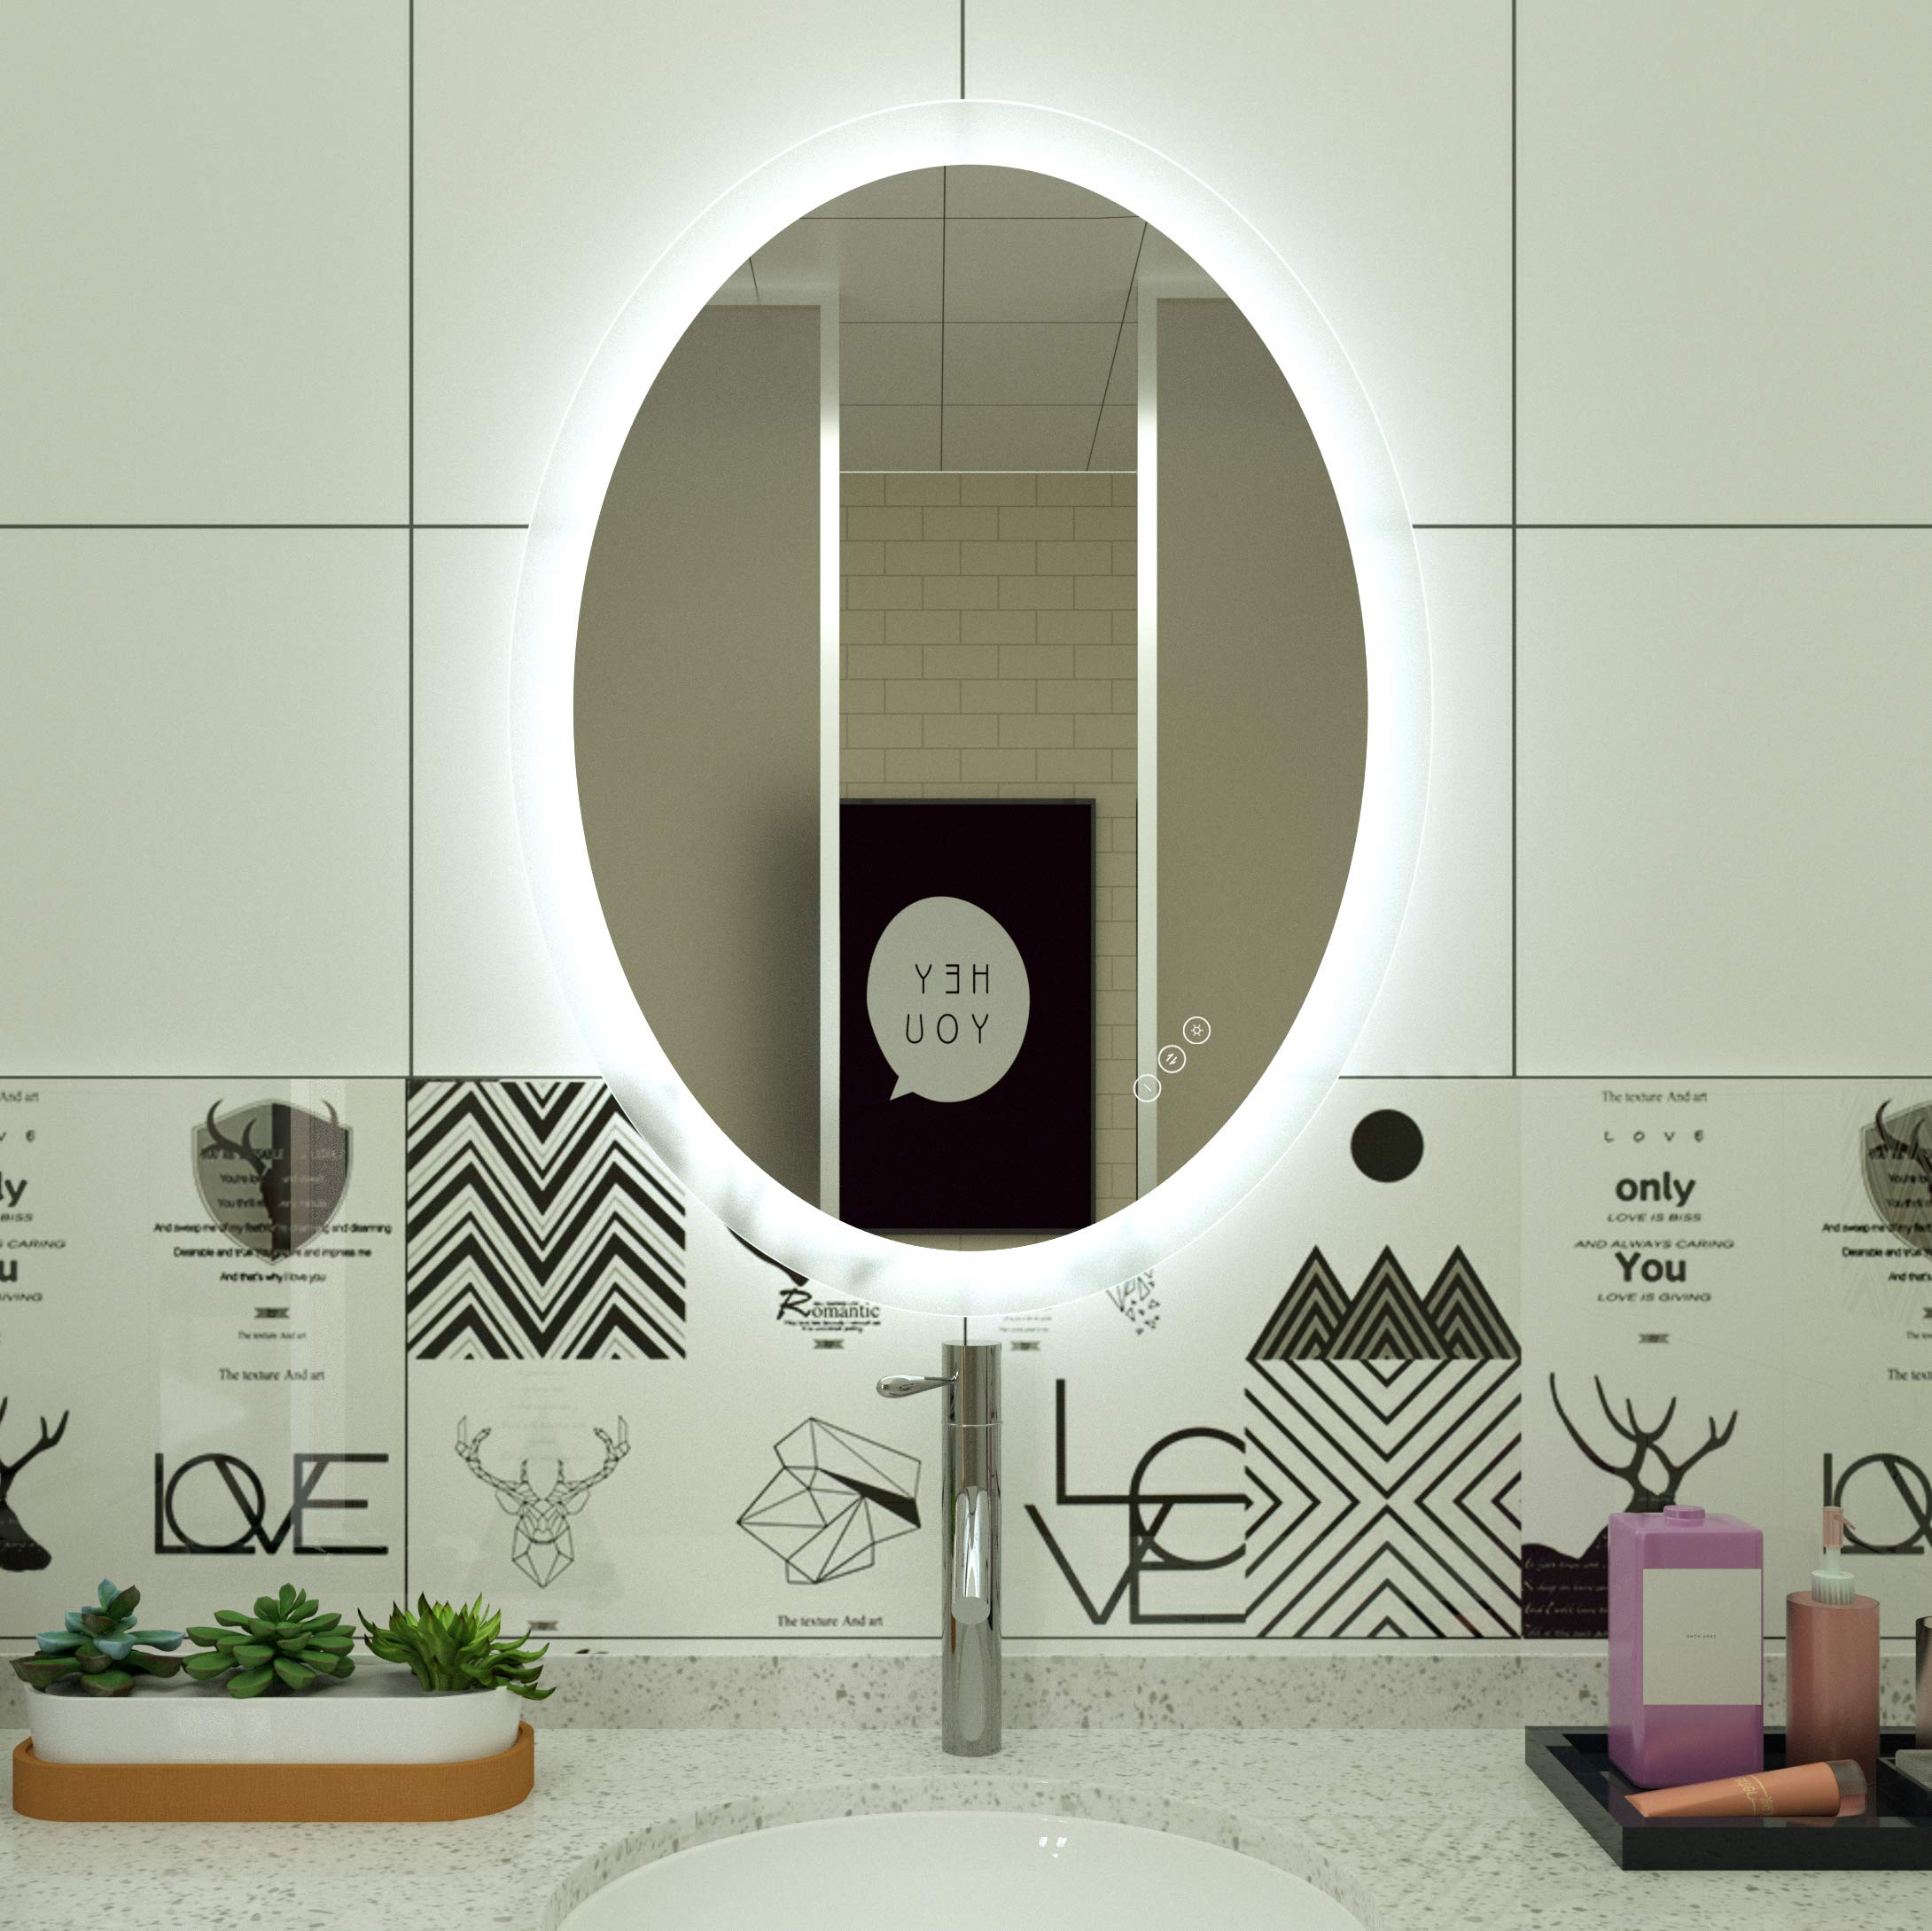 HAUSCHEN Oval 23x30 LED Lighted Bathroom Wall Mounted Mirror with CRI >90 Adjustable Warm White/Daylight Lights+Anti Fog+Dimmable Memory Touch Button+IP44 Waterproof by HAUSCHEN HOME